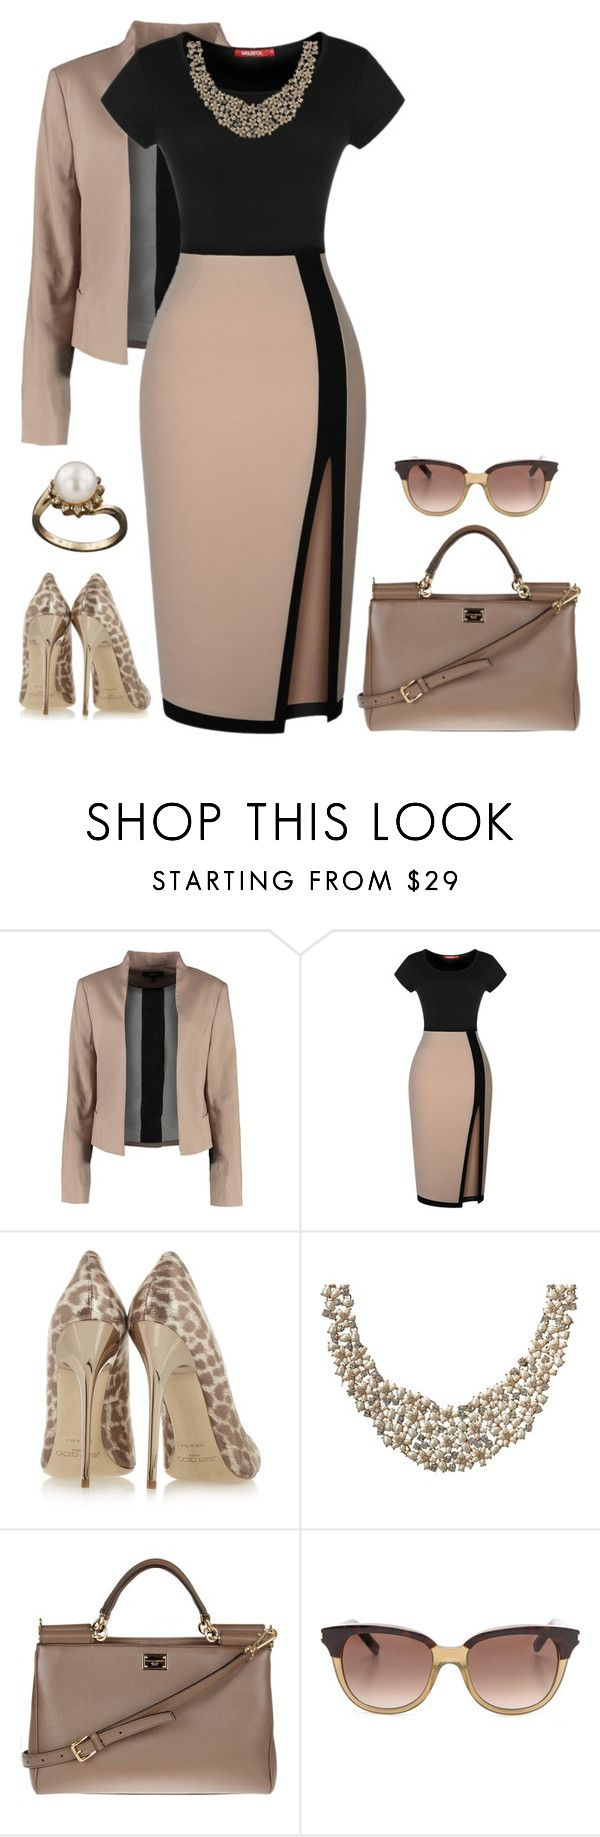 """1130"" by natalyag ❤ liked on Polyvore featuring Mexx Metropolitan, Miusol, Jimmy Choo, Kate Spade, Dolce&Gabbana and Yves Saint Laurent"